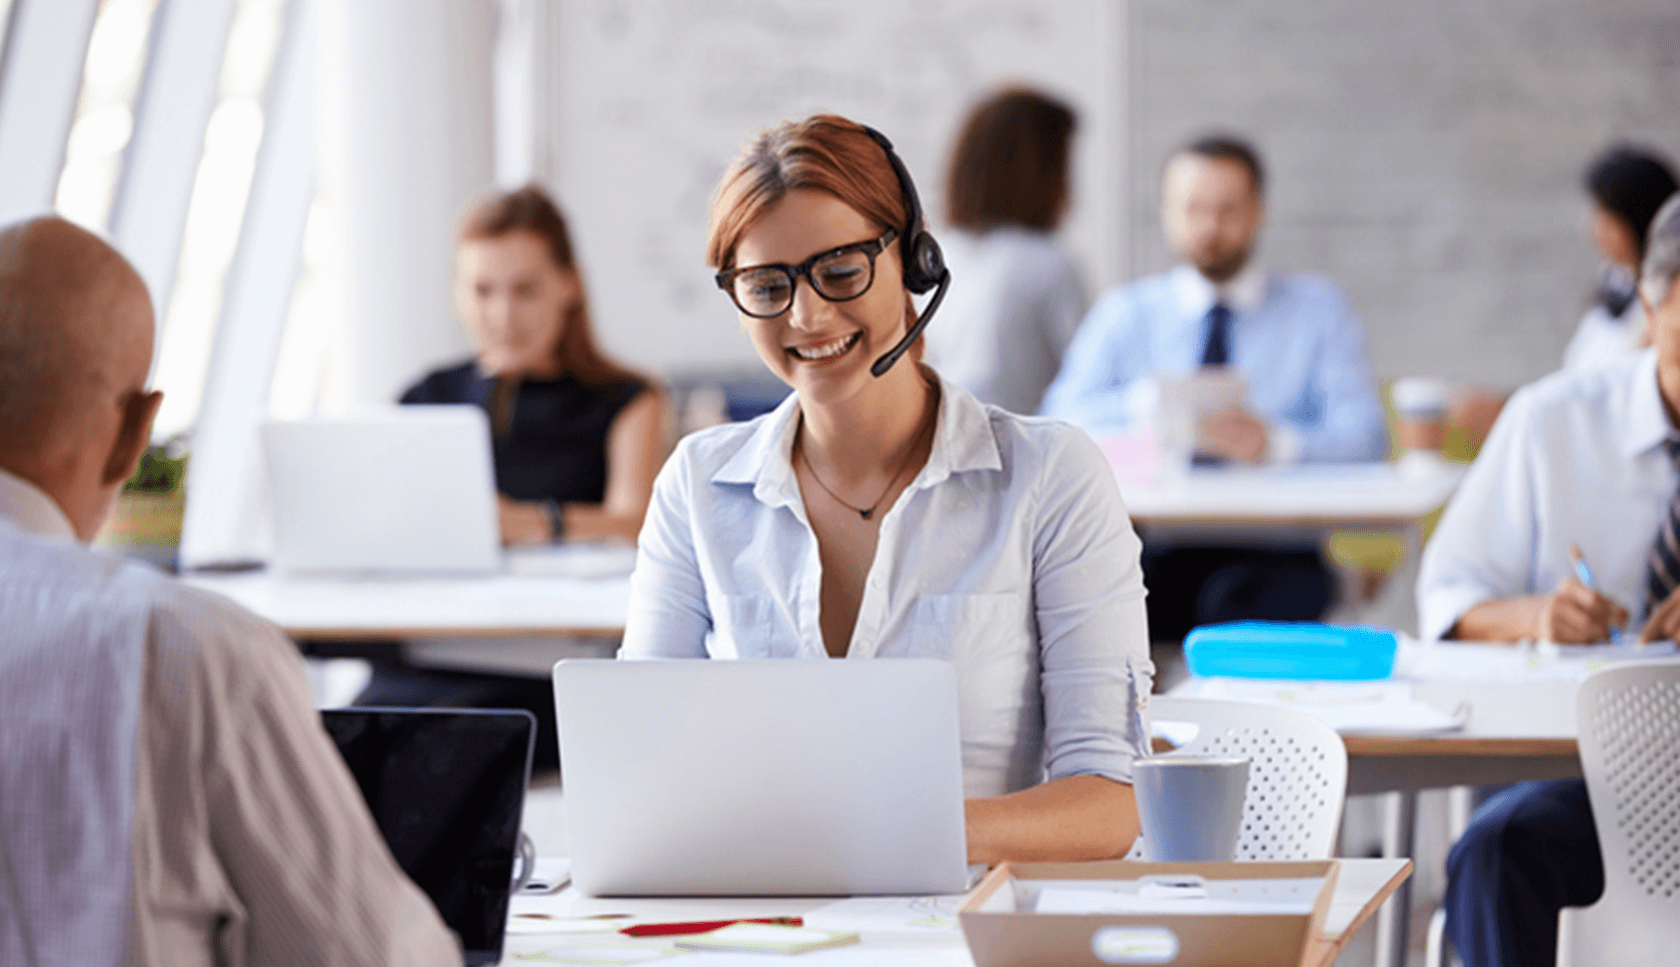 Why Los Angeles Businesses Need Tech Support